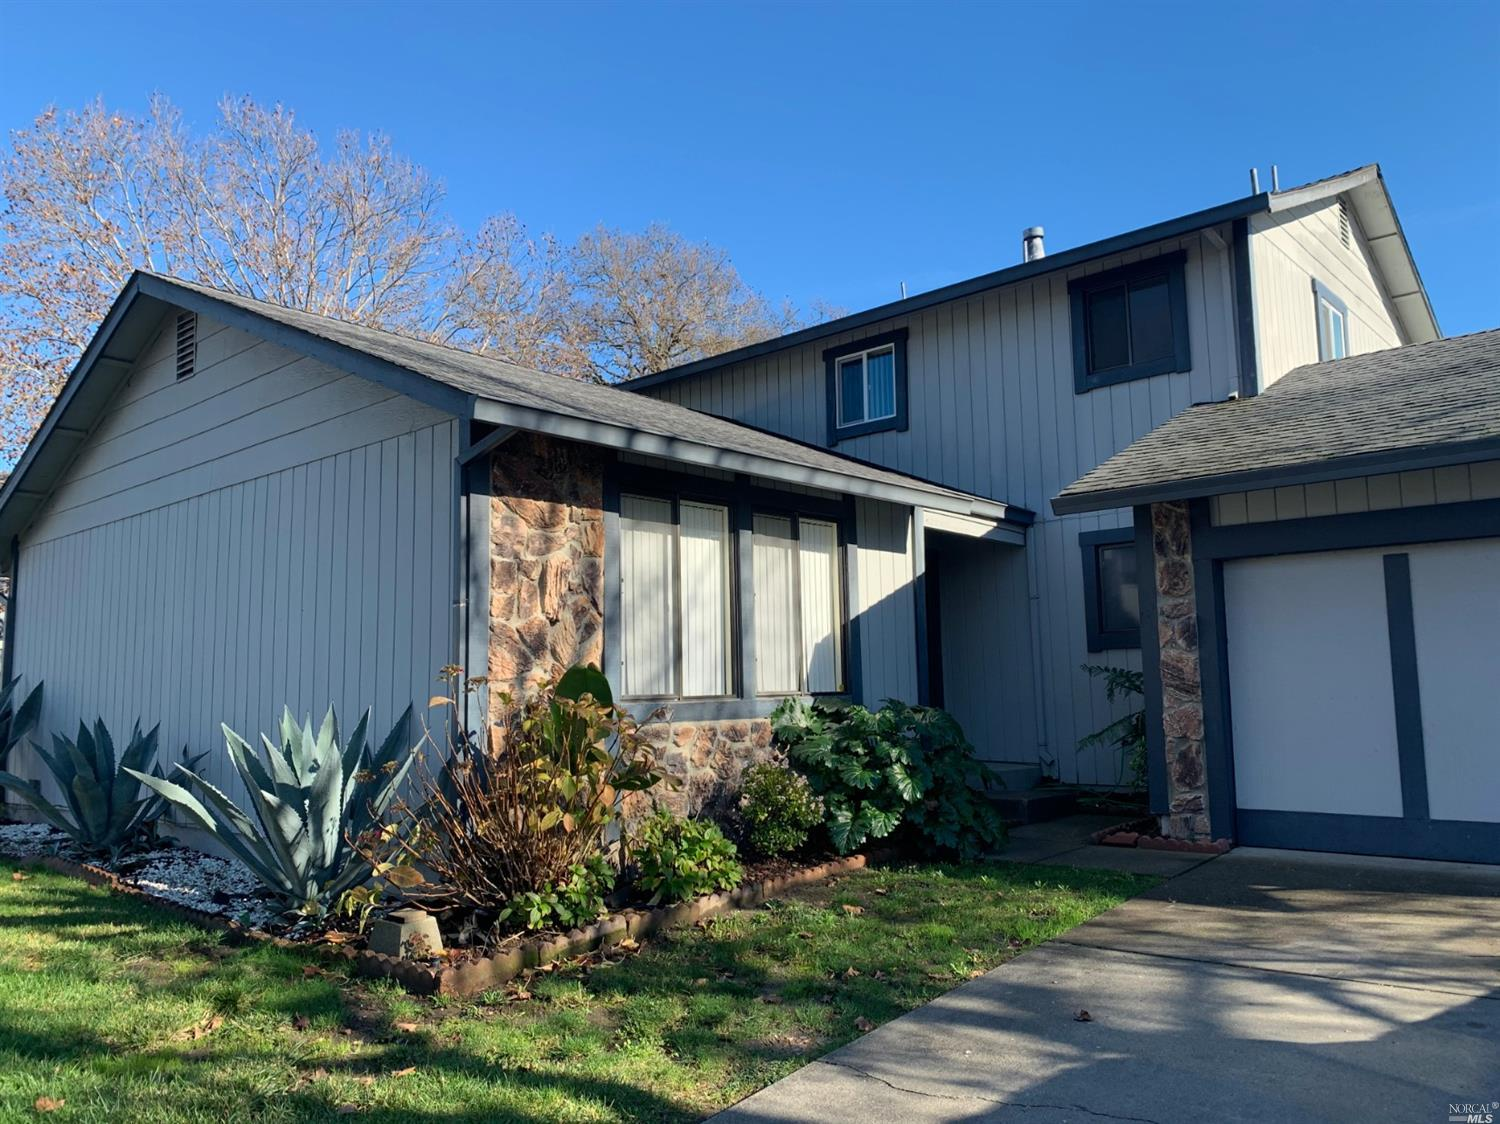 2335 Copperfield Dr, Santa Rosa, CA, 95401